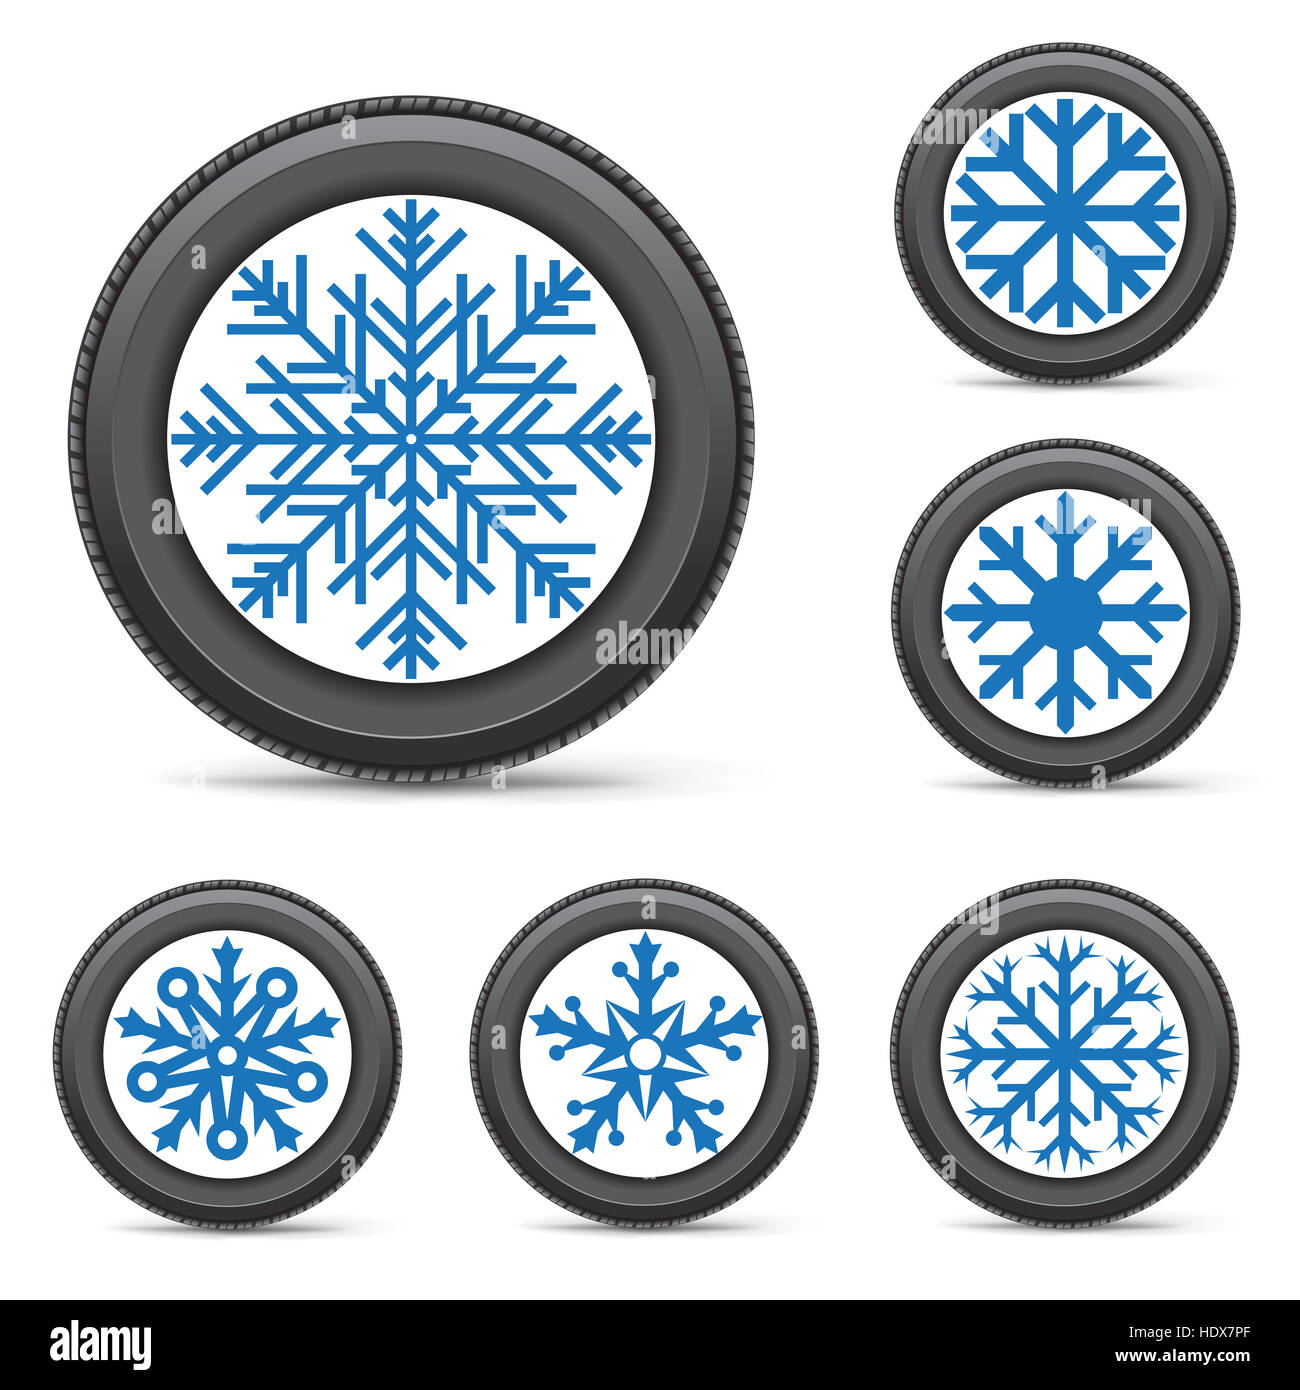 The Set Of Winter Inflated Wheels On White Background Tires With